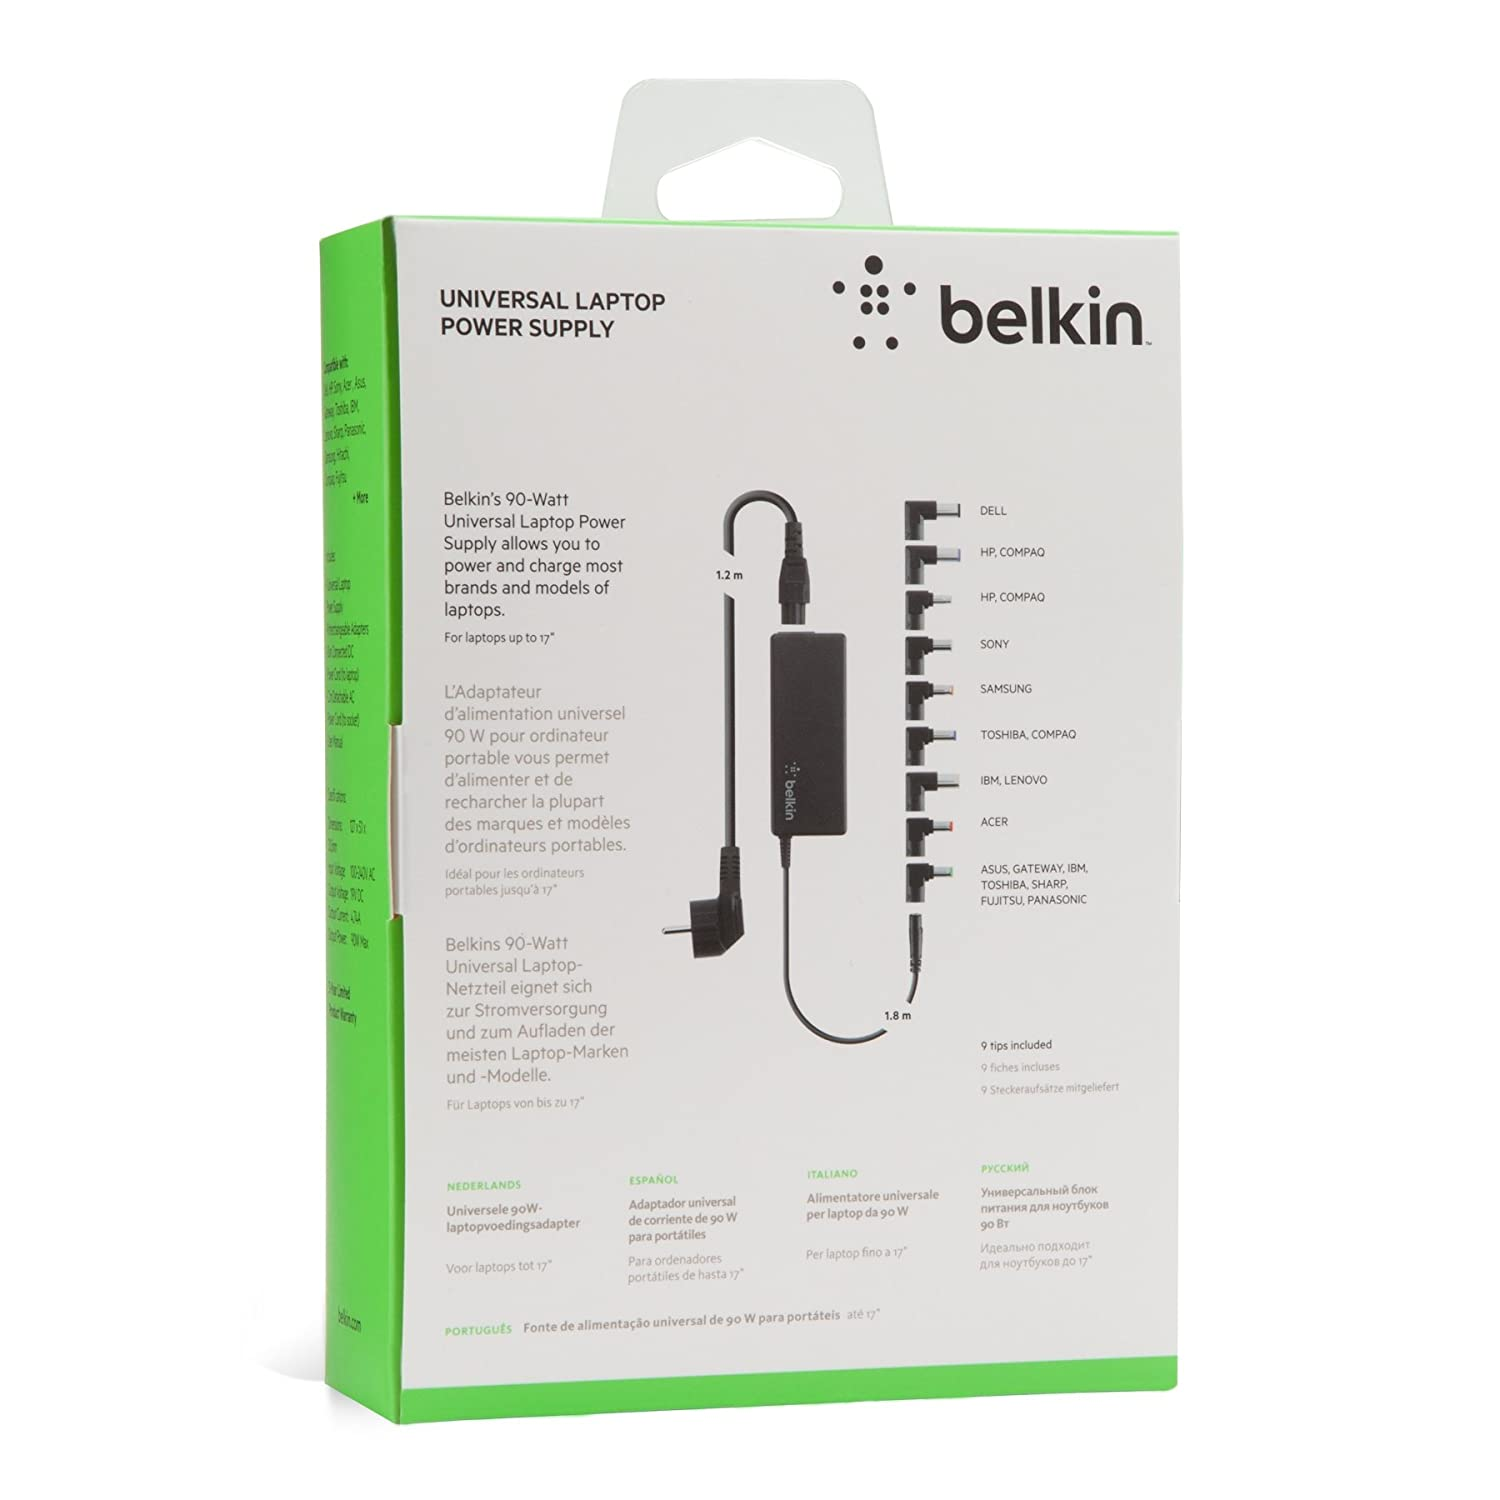 Amazon.com: Belkin 90W Universal AC/DC Power Adapter - F5L135cw90W: Home Audio & Theater